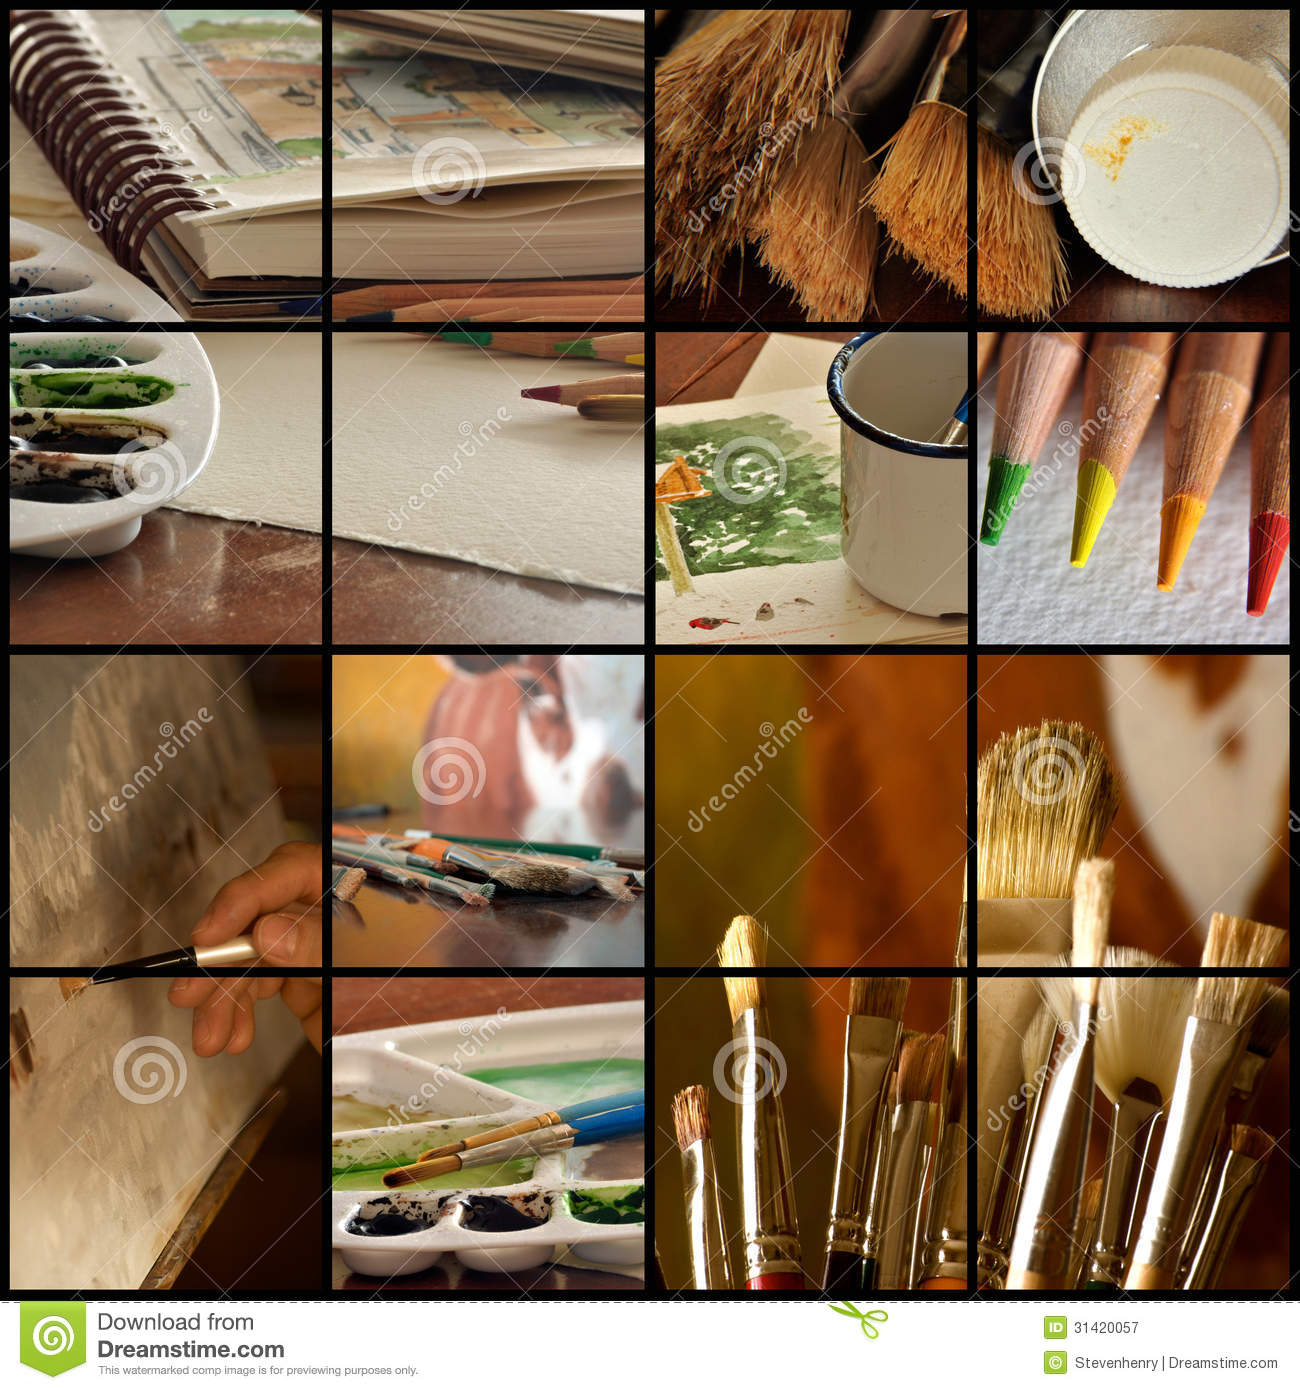 https://thumbs.dreamstime.com/z/art-collage-various-images-supplies-31420057.jpg